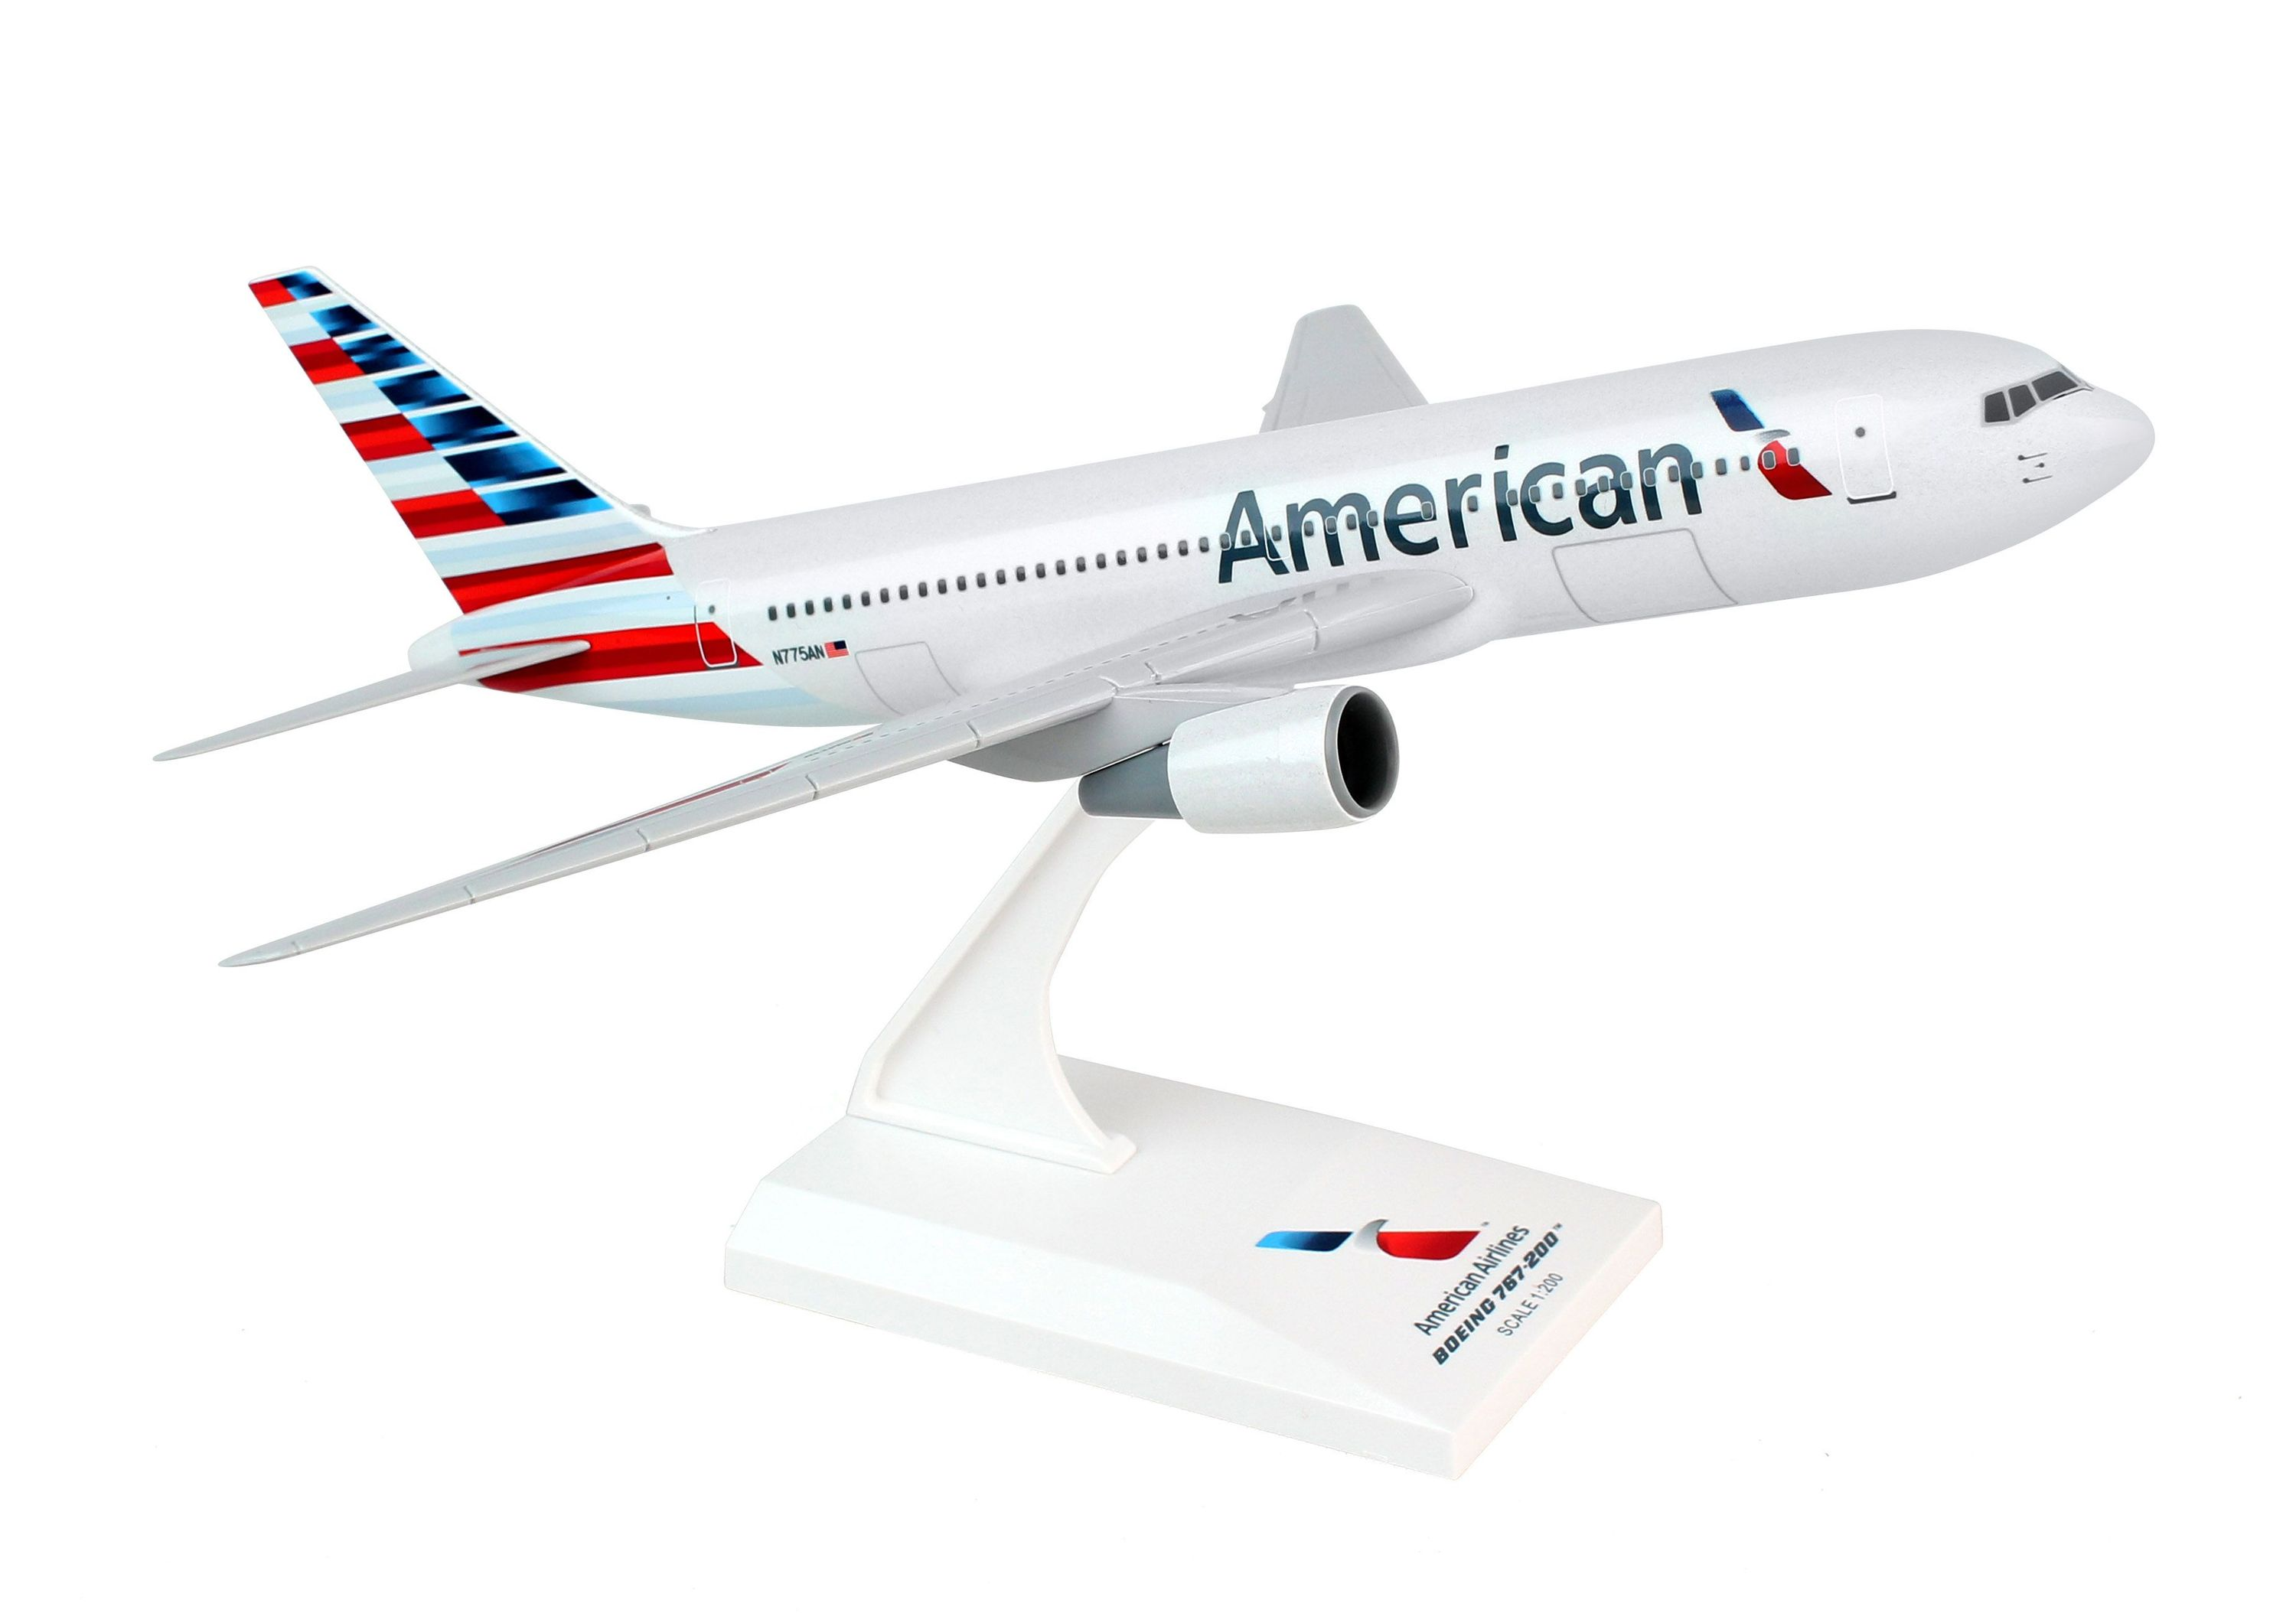 SkyMarks Flugzeugmodell American Airlines Boeing 767-200 Maßstab 1:200